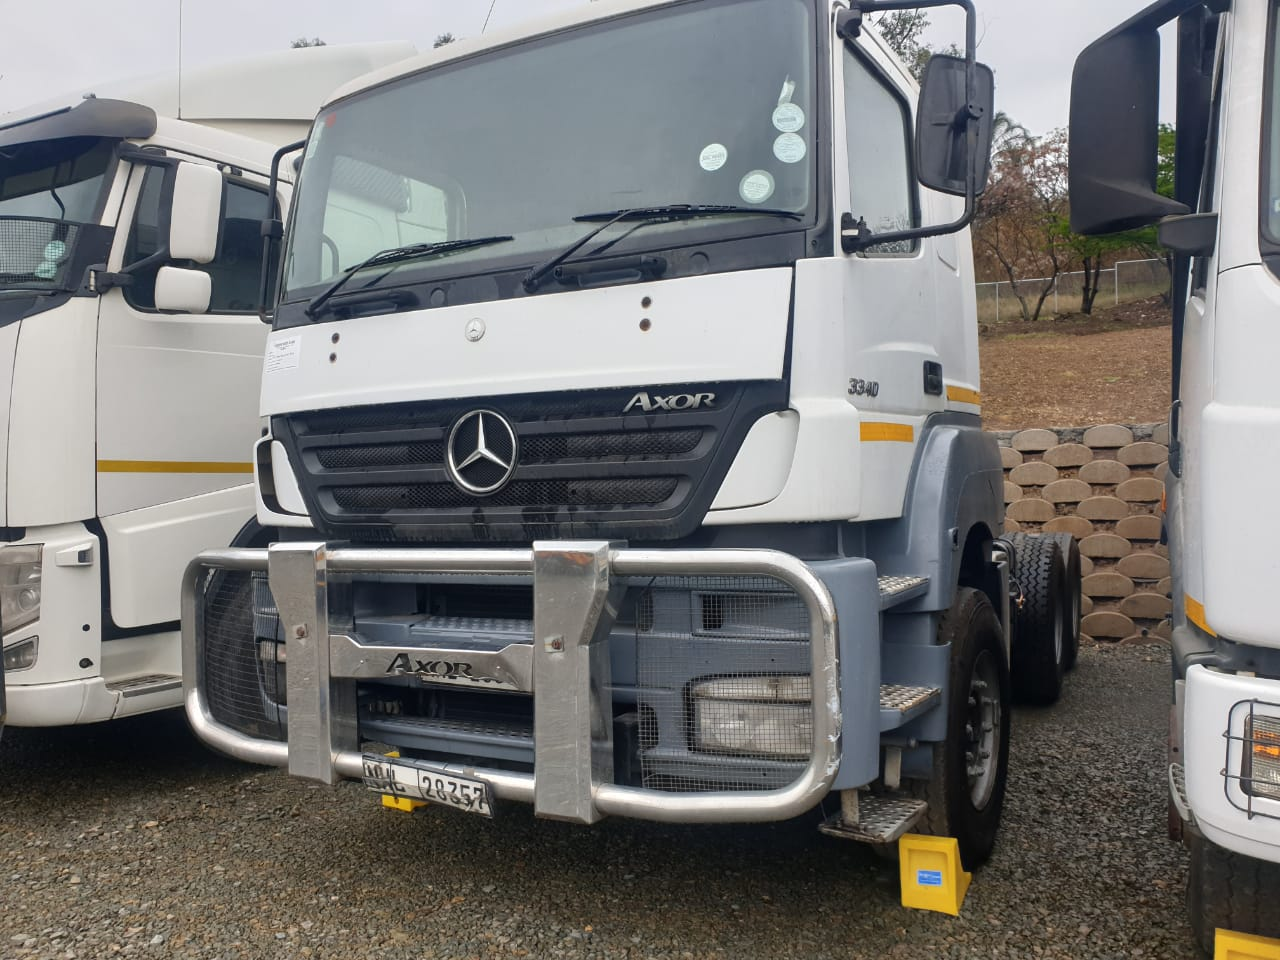 2010-merc-bezn-axor-3340-www.n2trucks.co.za